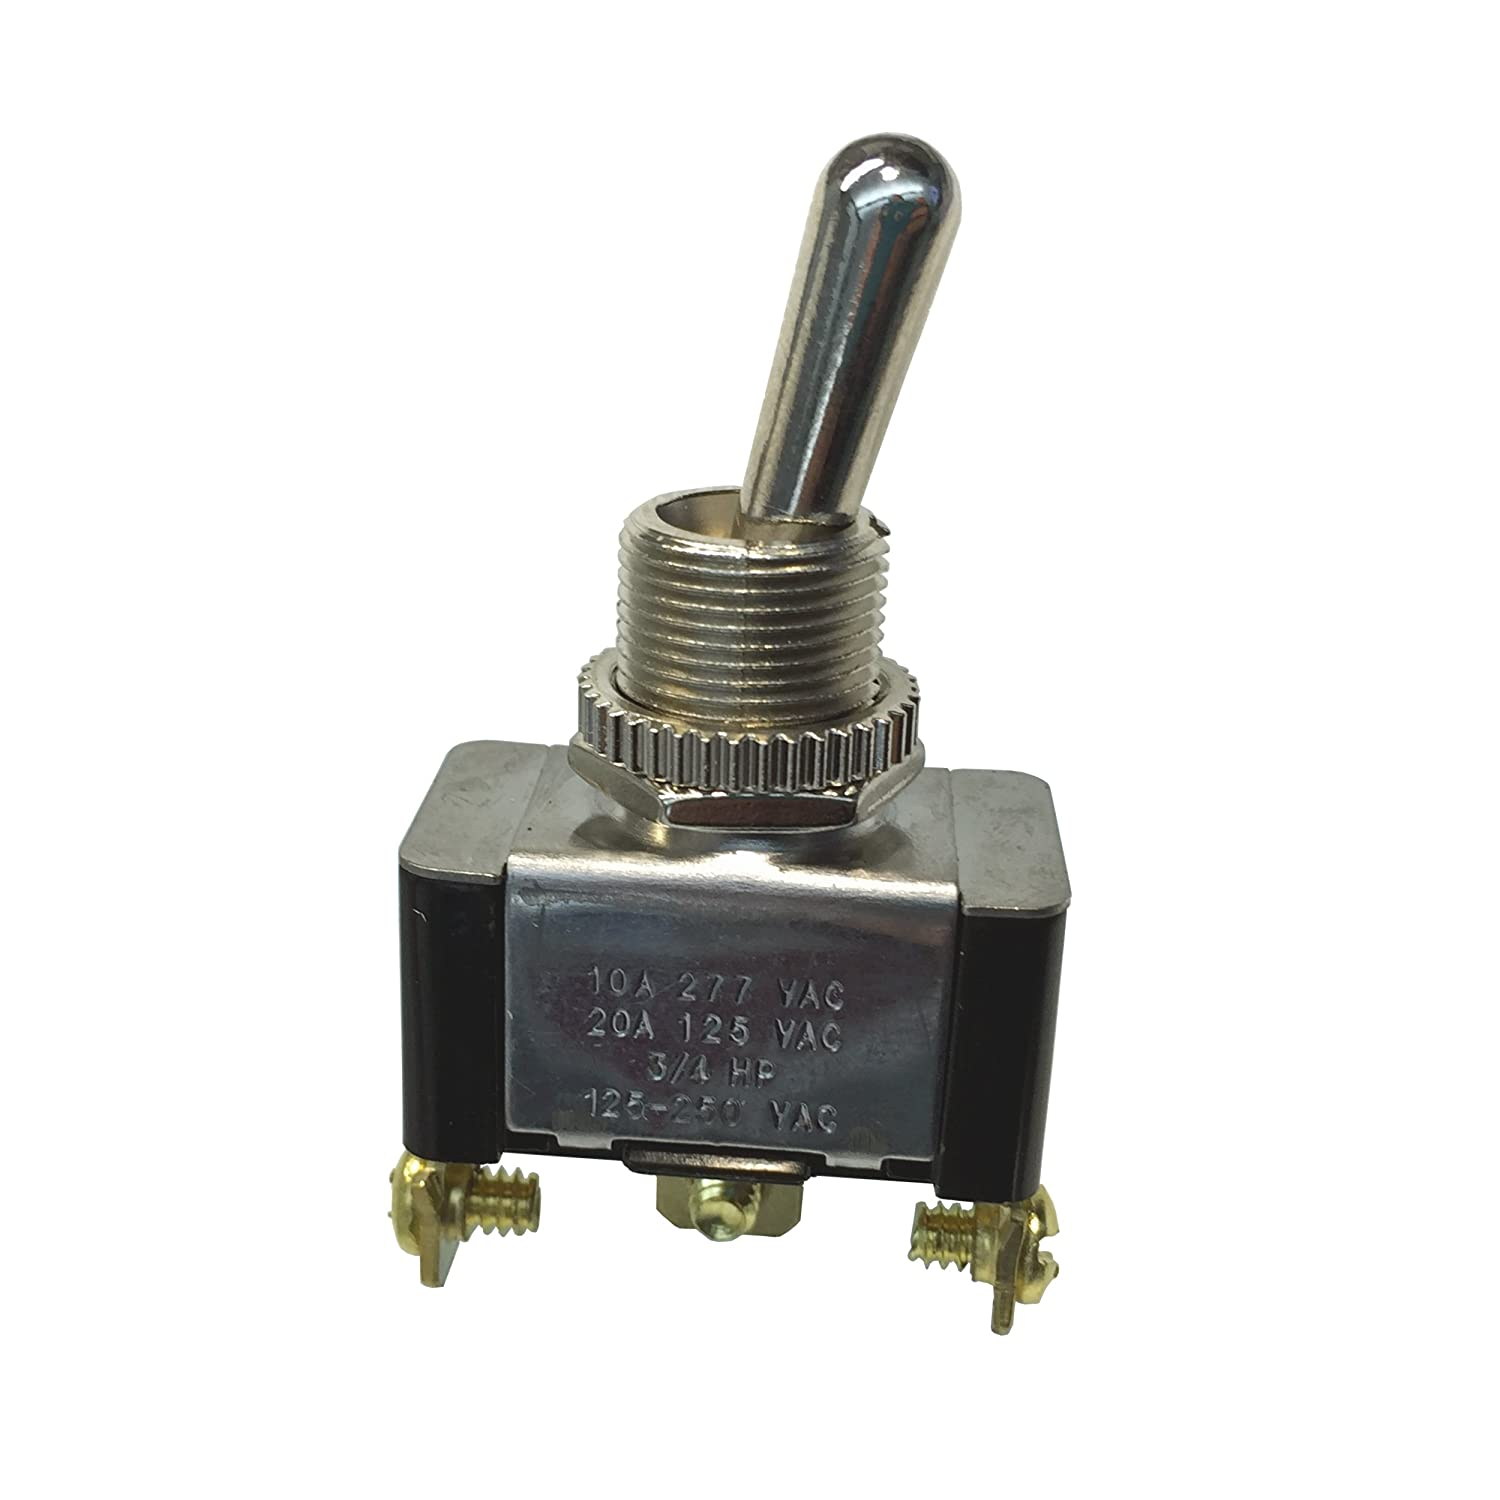 Gardner Bender Gsw 12 Heavy Duty Electrical Toggle We Also Sell The Ranco Etc Controller Prewired With Power Cord And Switch Spdt On 20 A 125v Ac Screw Terminal Home Improvement